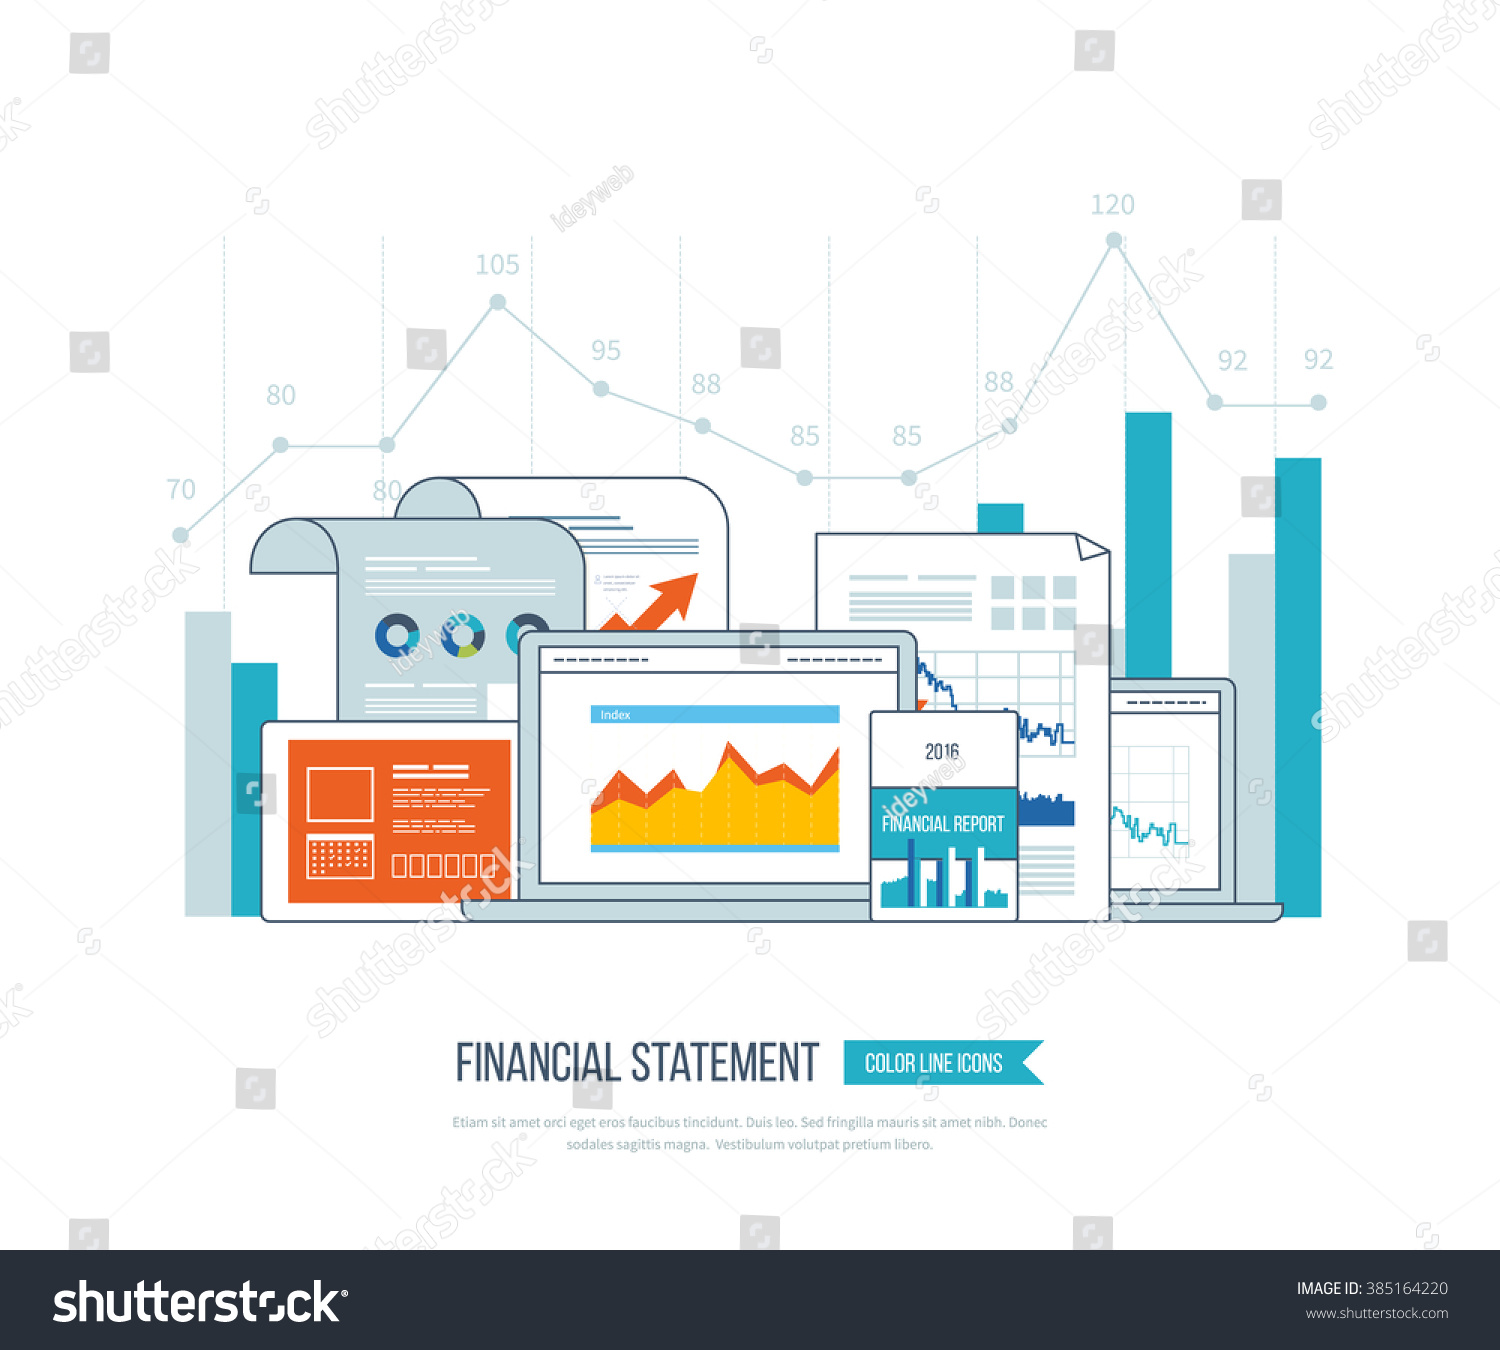 Premise Indicator Words: Concepts For Business Analysis, Financial Statement